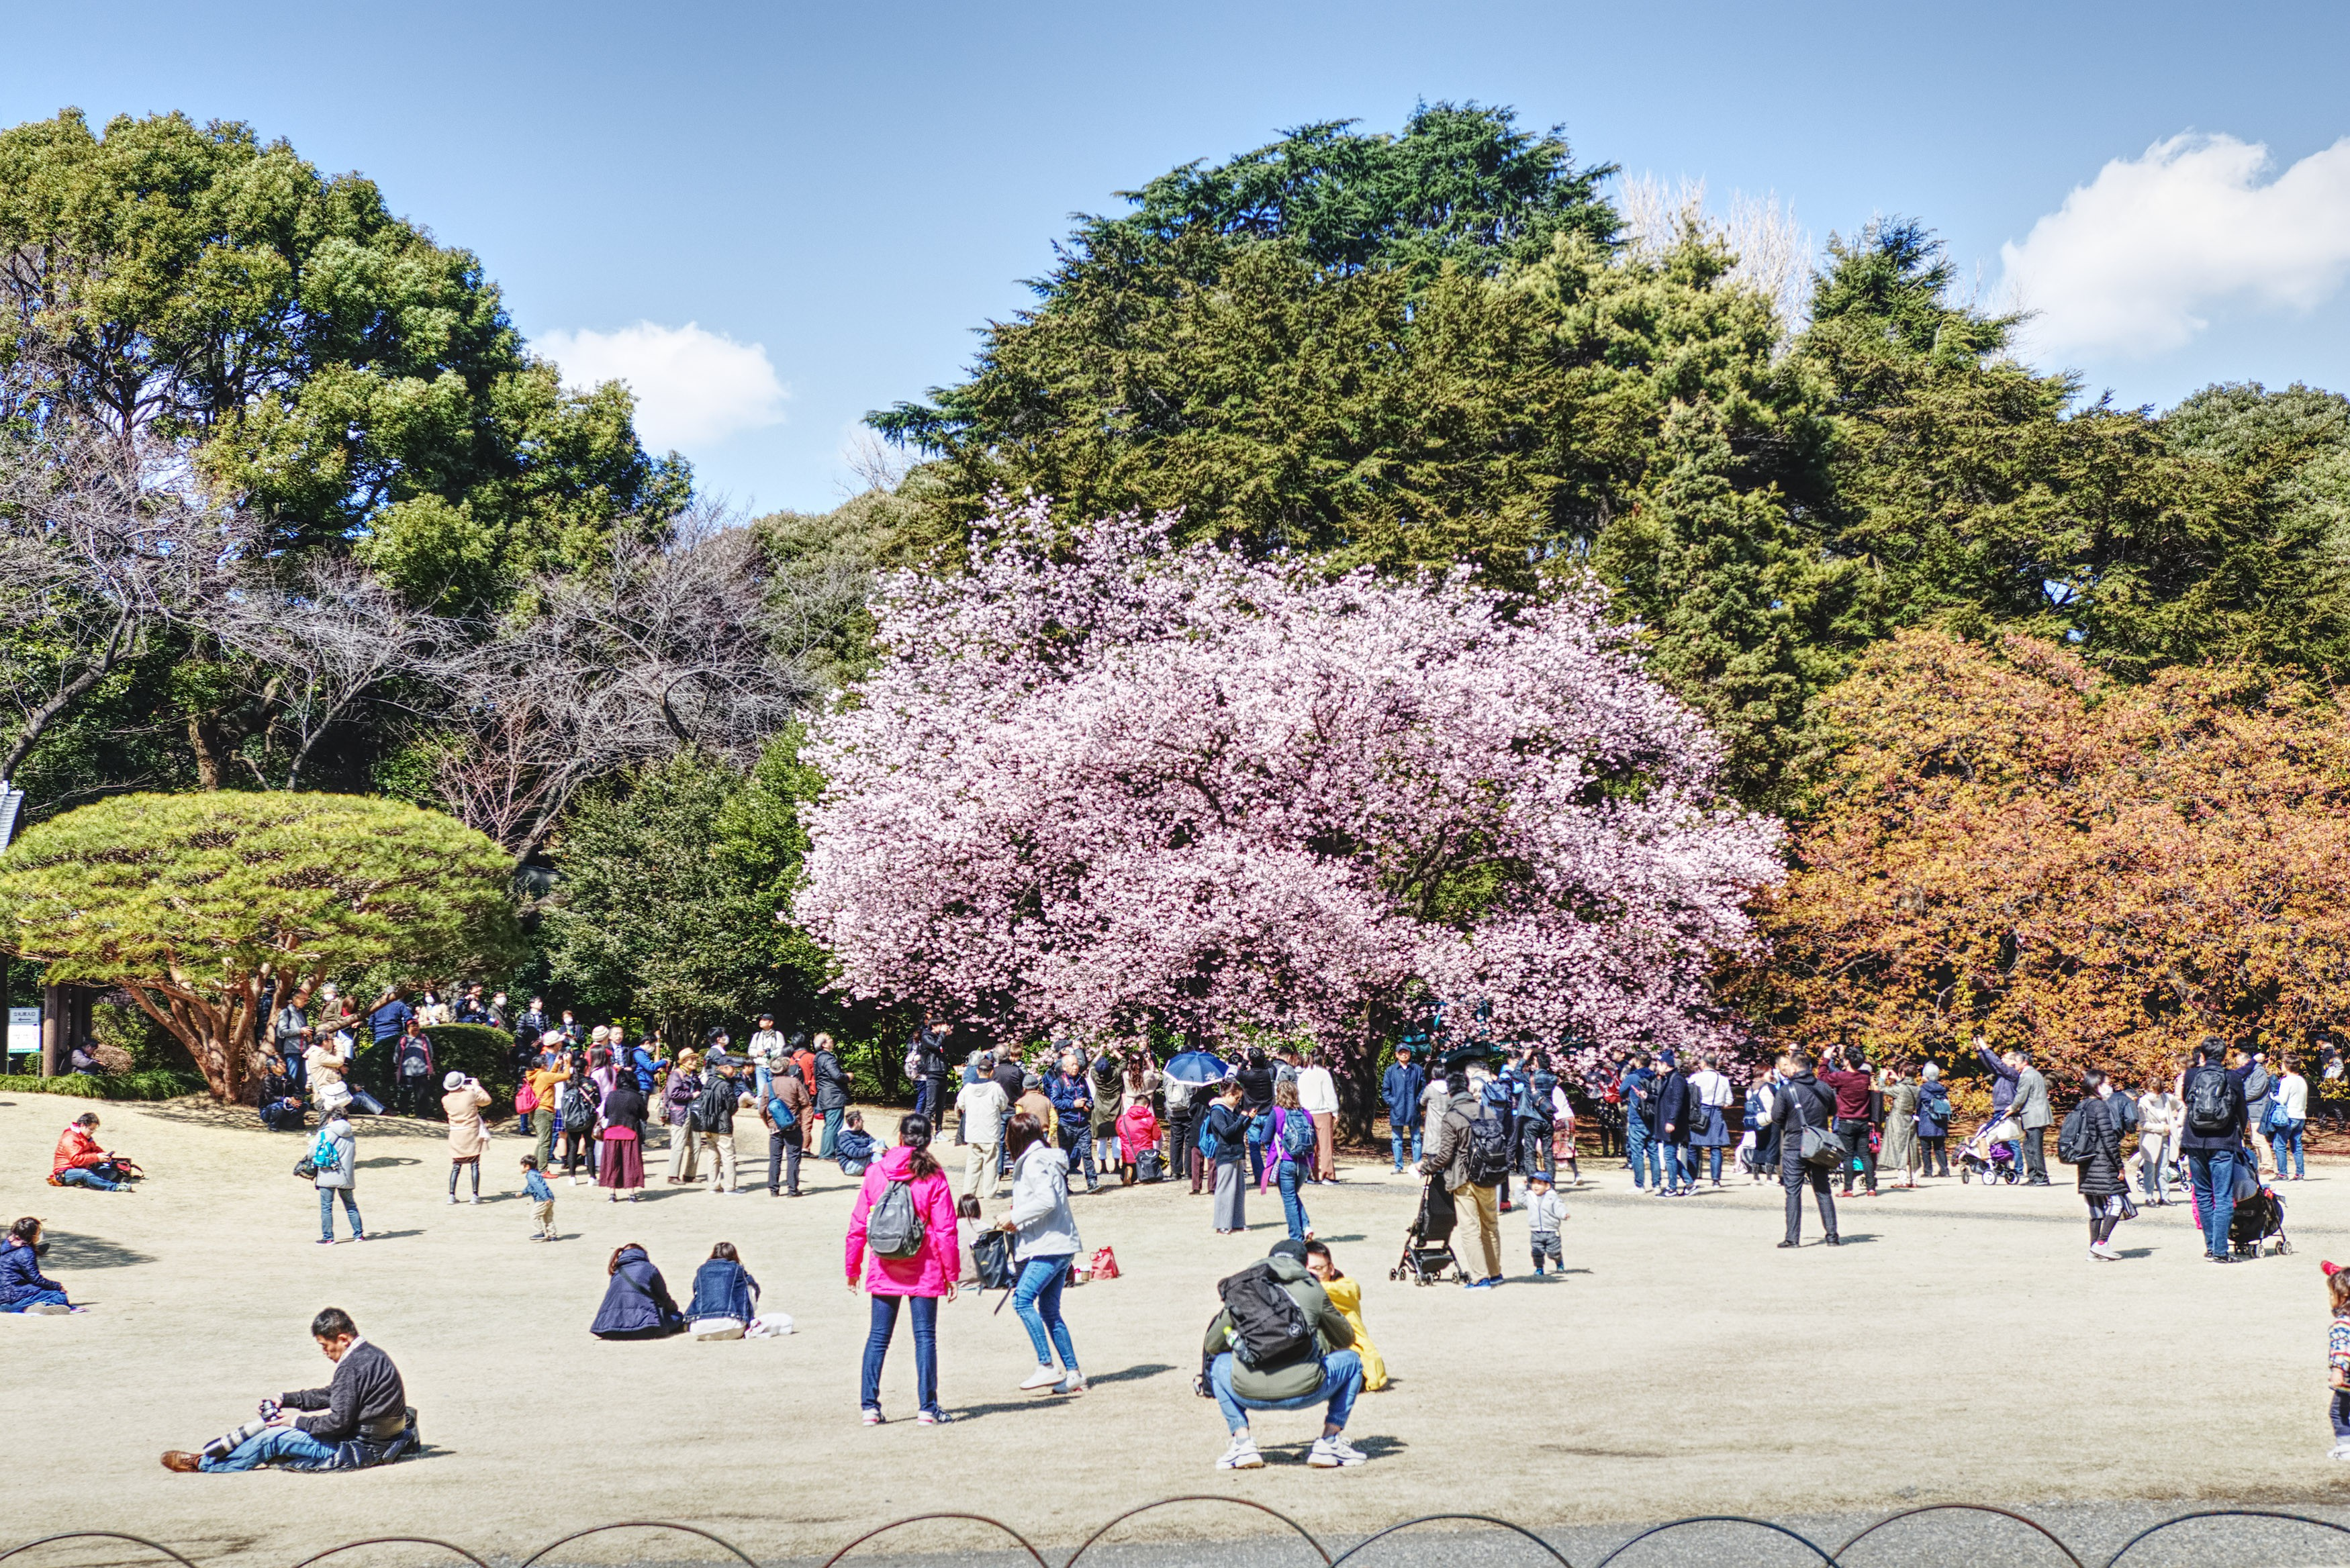 Shinjuku Gyoen is breathtaking during the cherry blossom season